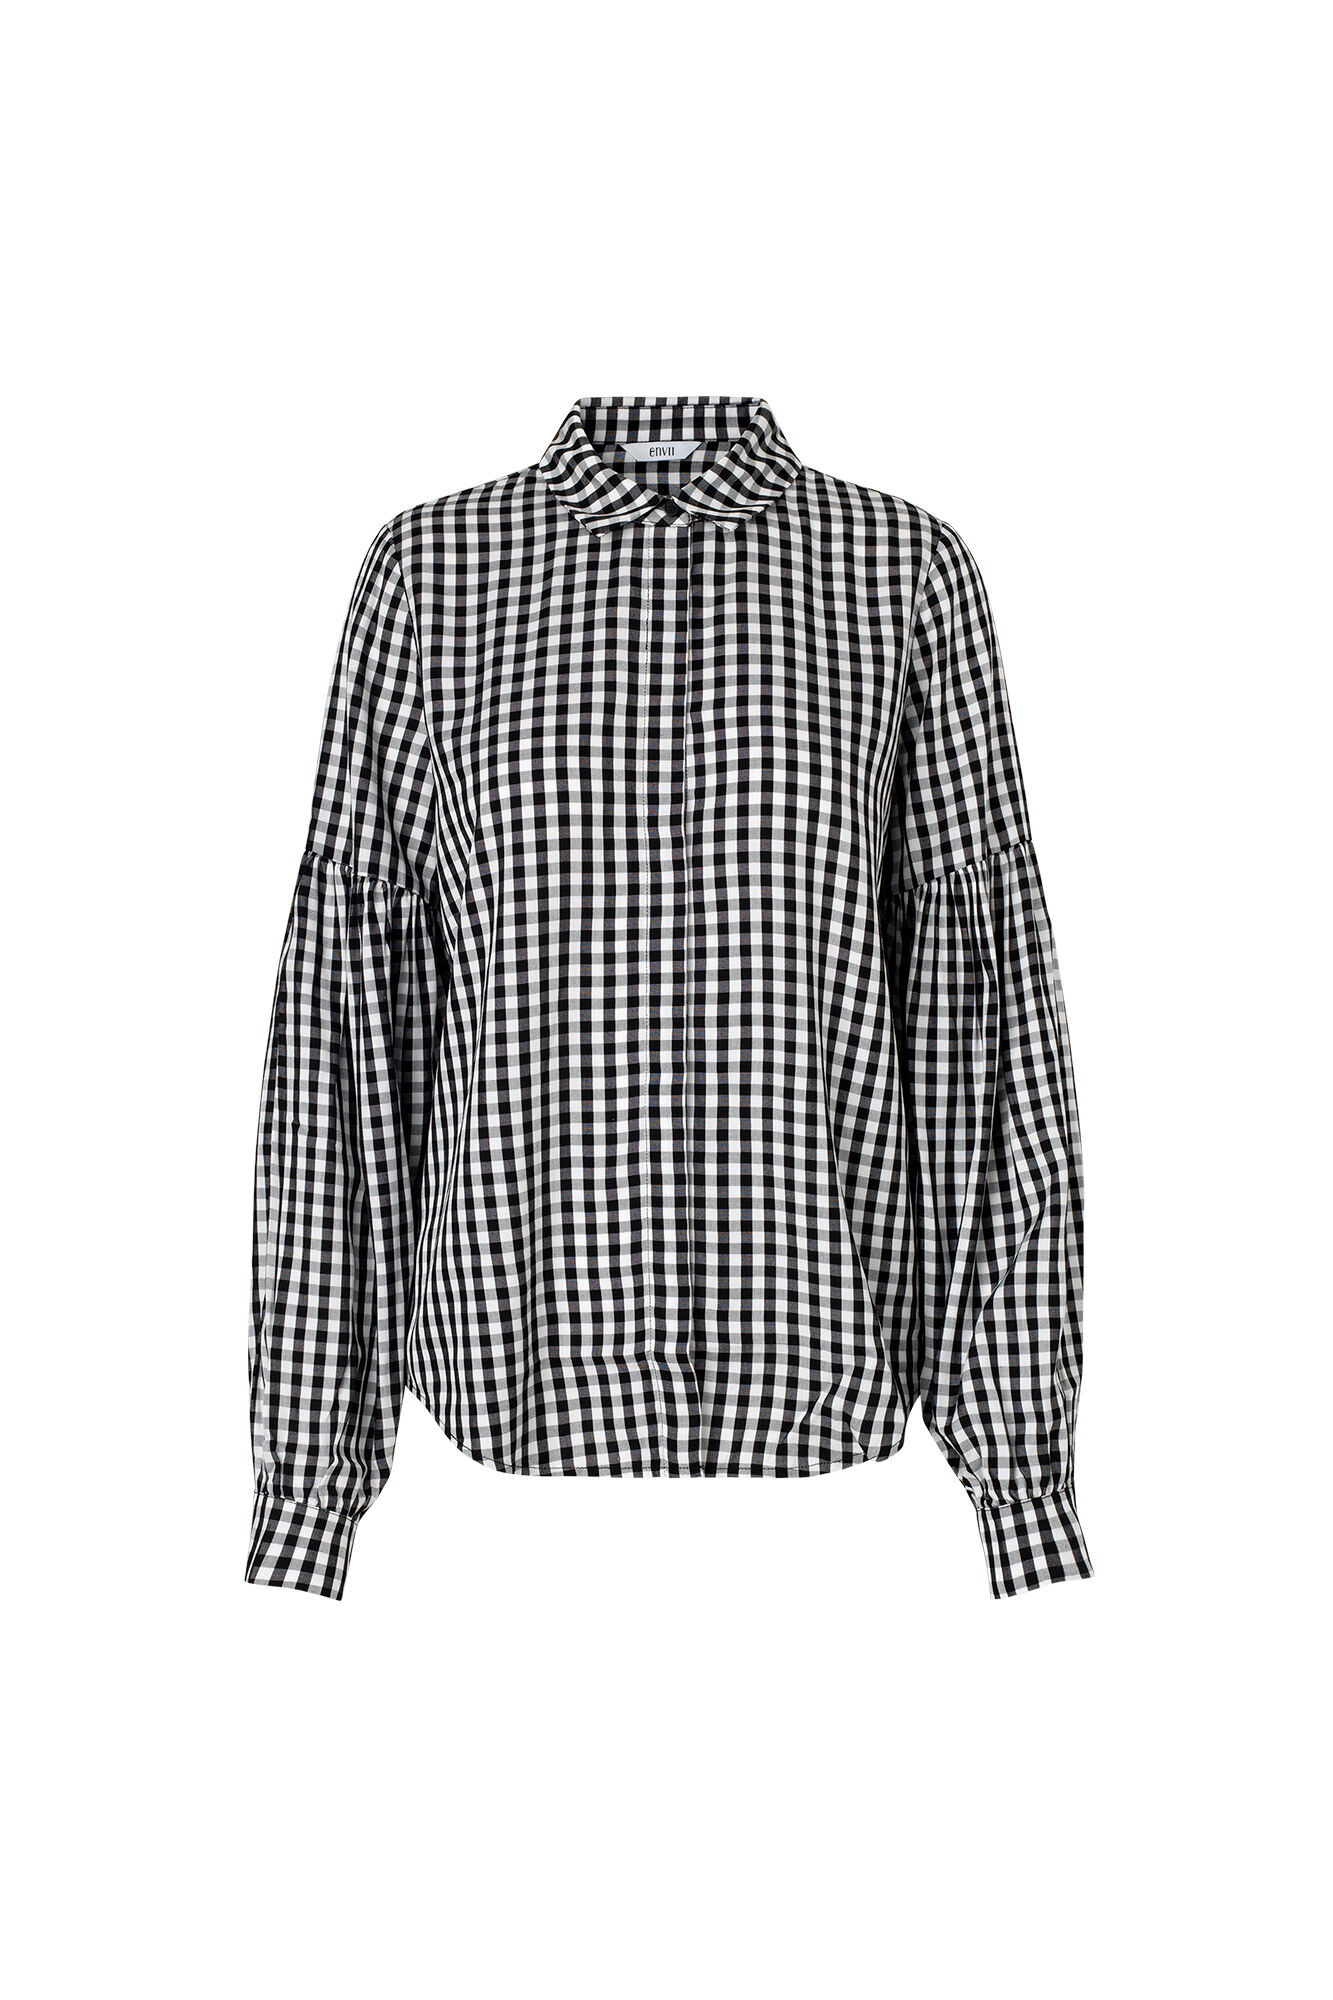 ENDORM LS SHIRT 6473, GINGHAM CHECK